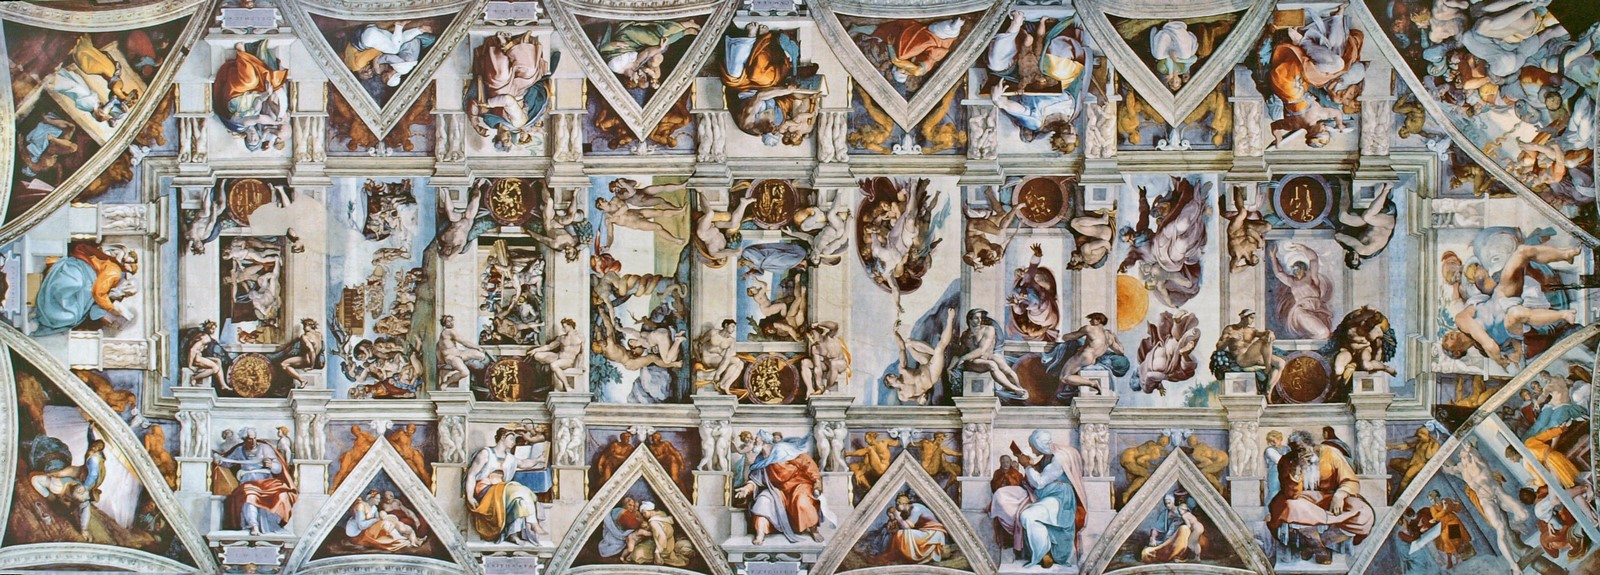 The Sistine Chapel stands on the site of the Cappella Maggiore.- Sheet17